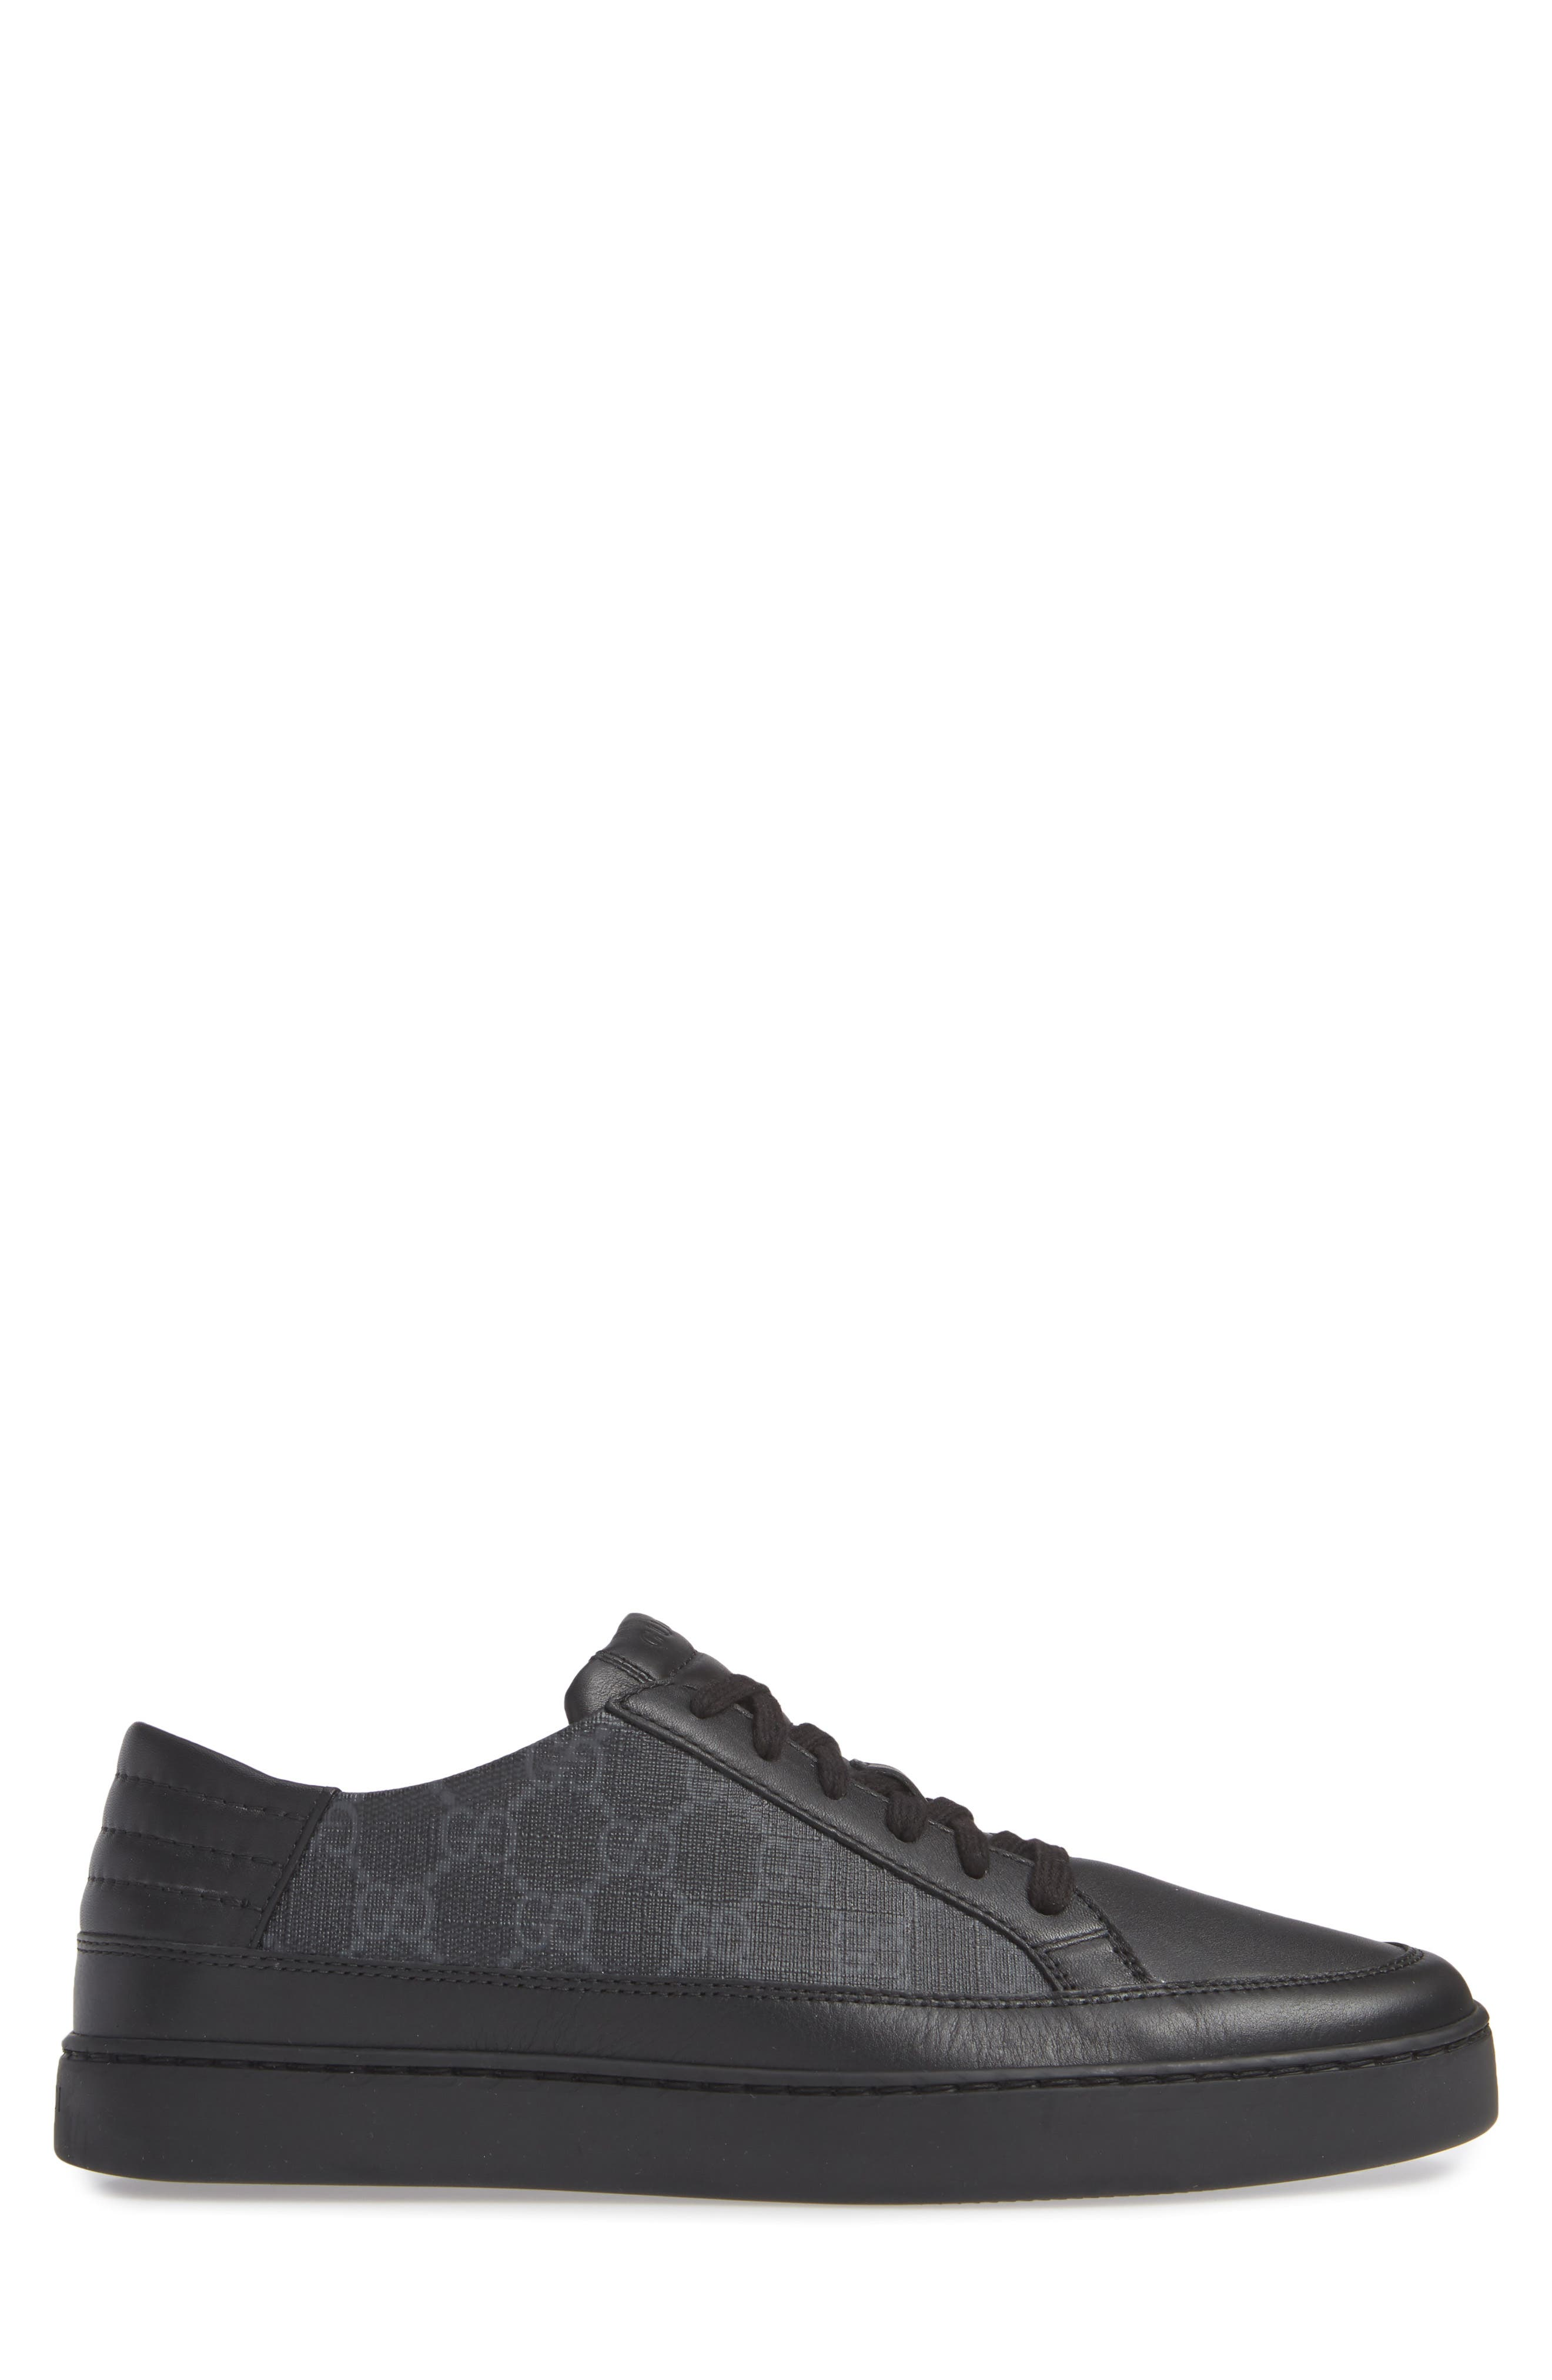 GUCCI, 'Common' Low-Top Sneaker, Alternate thumbnail 3, color, NERO/ BLACK